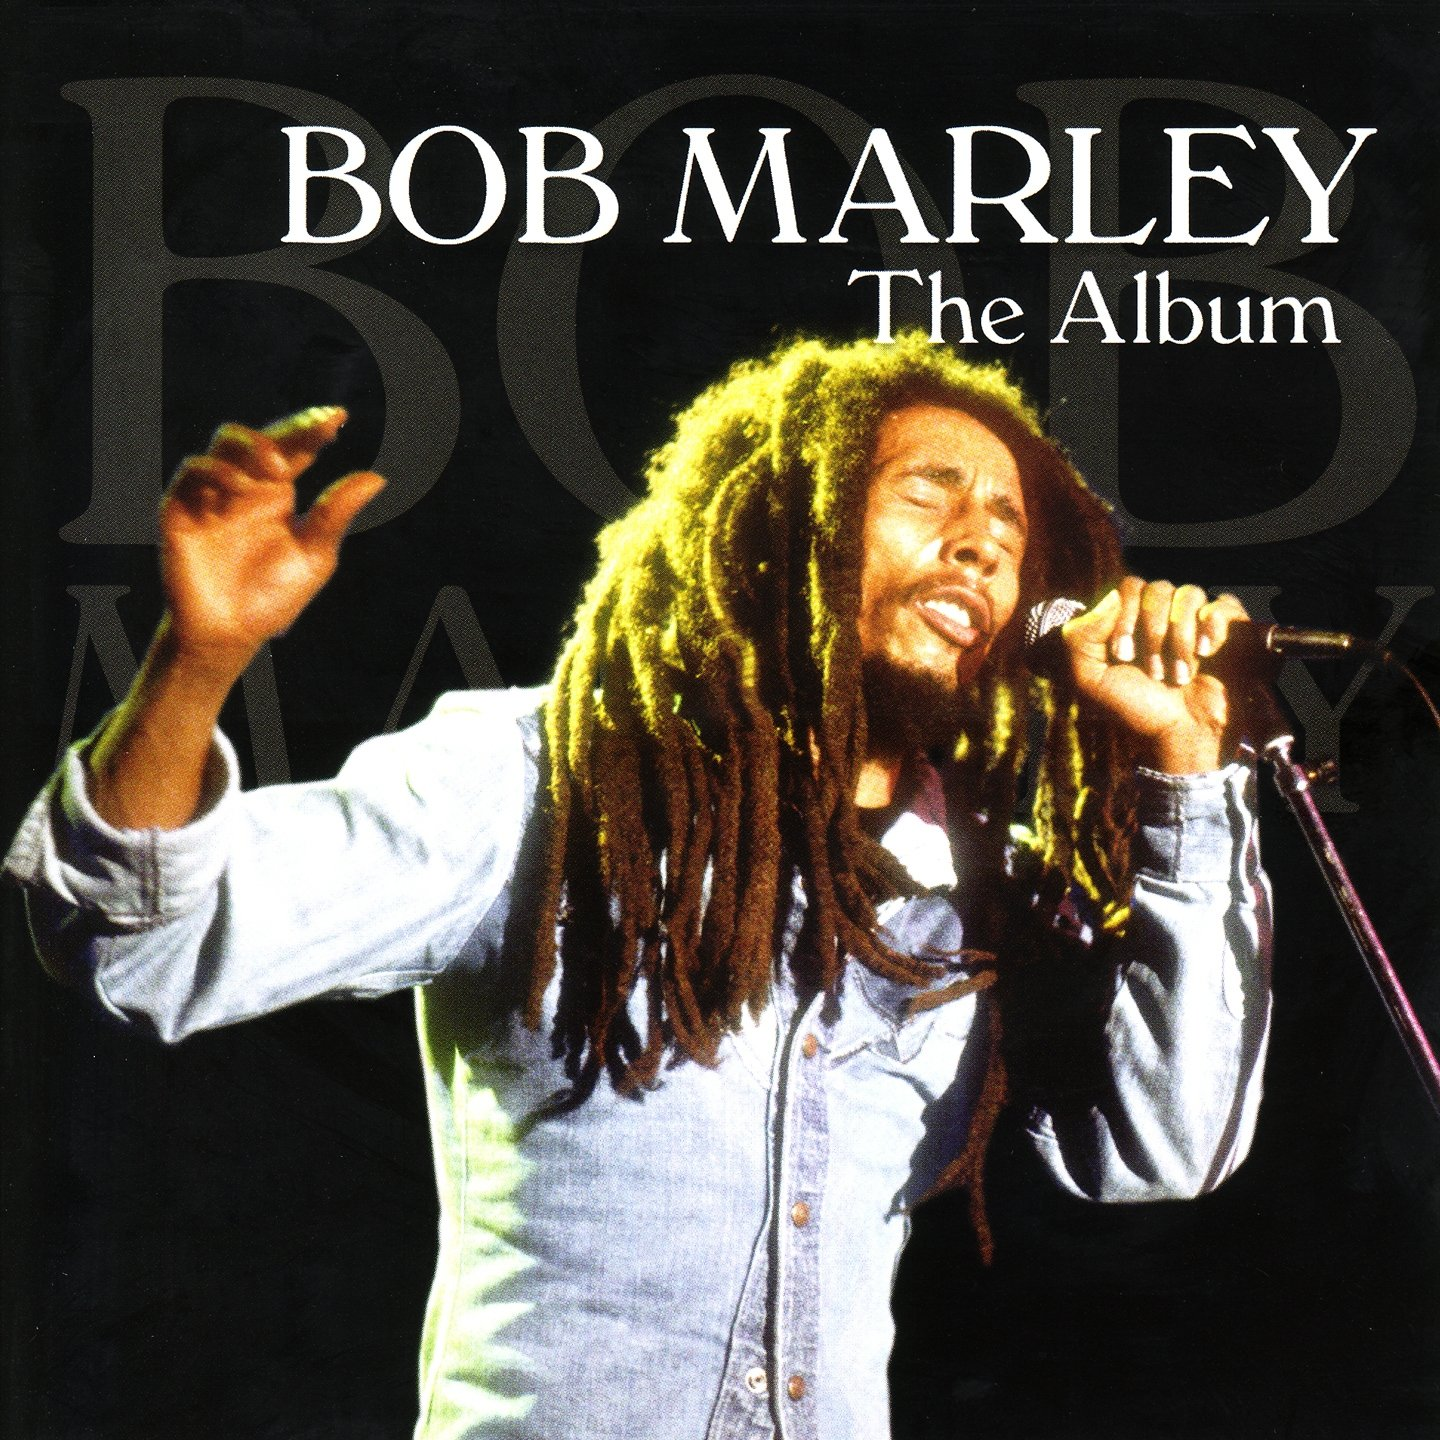 Bob Marley Cry Song Mp3 Download: Listen, Watch, Download And